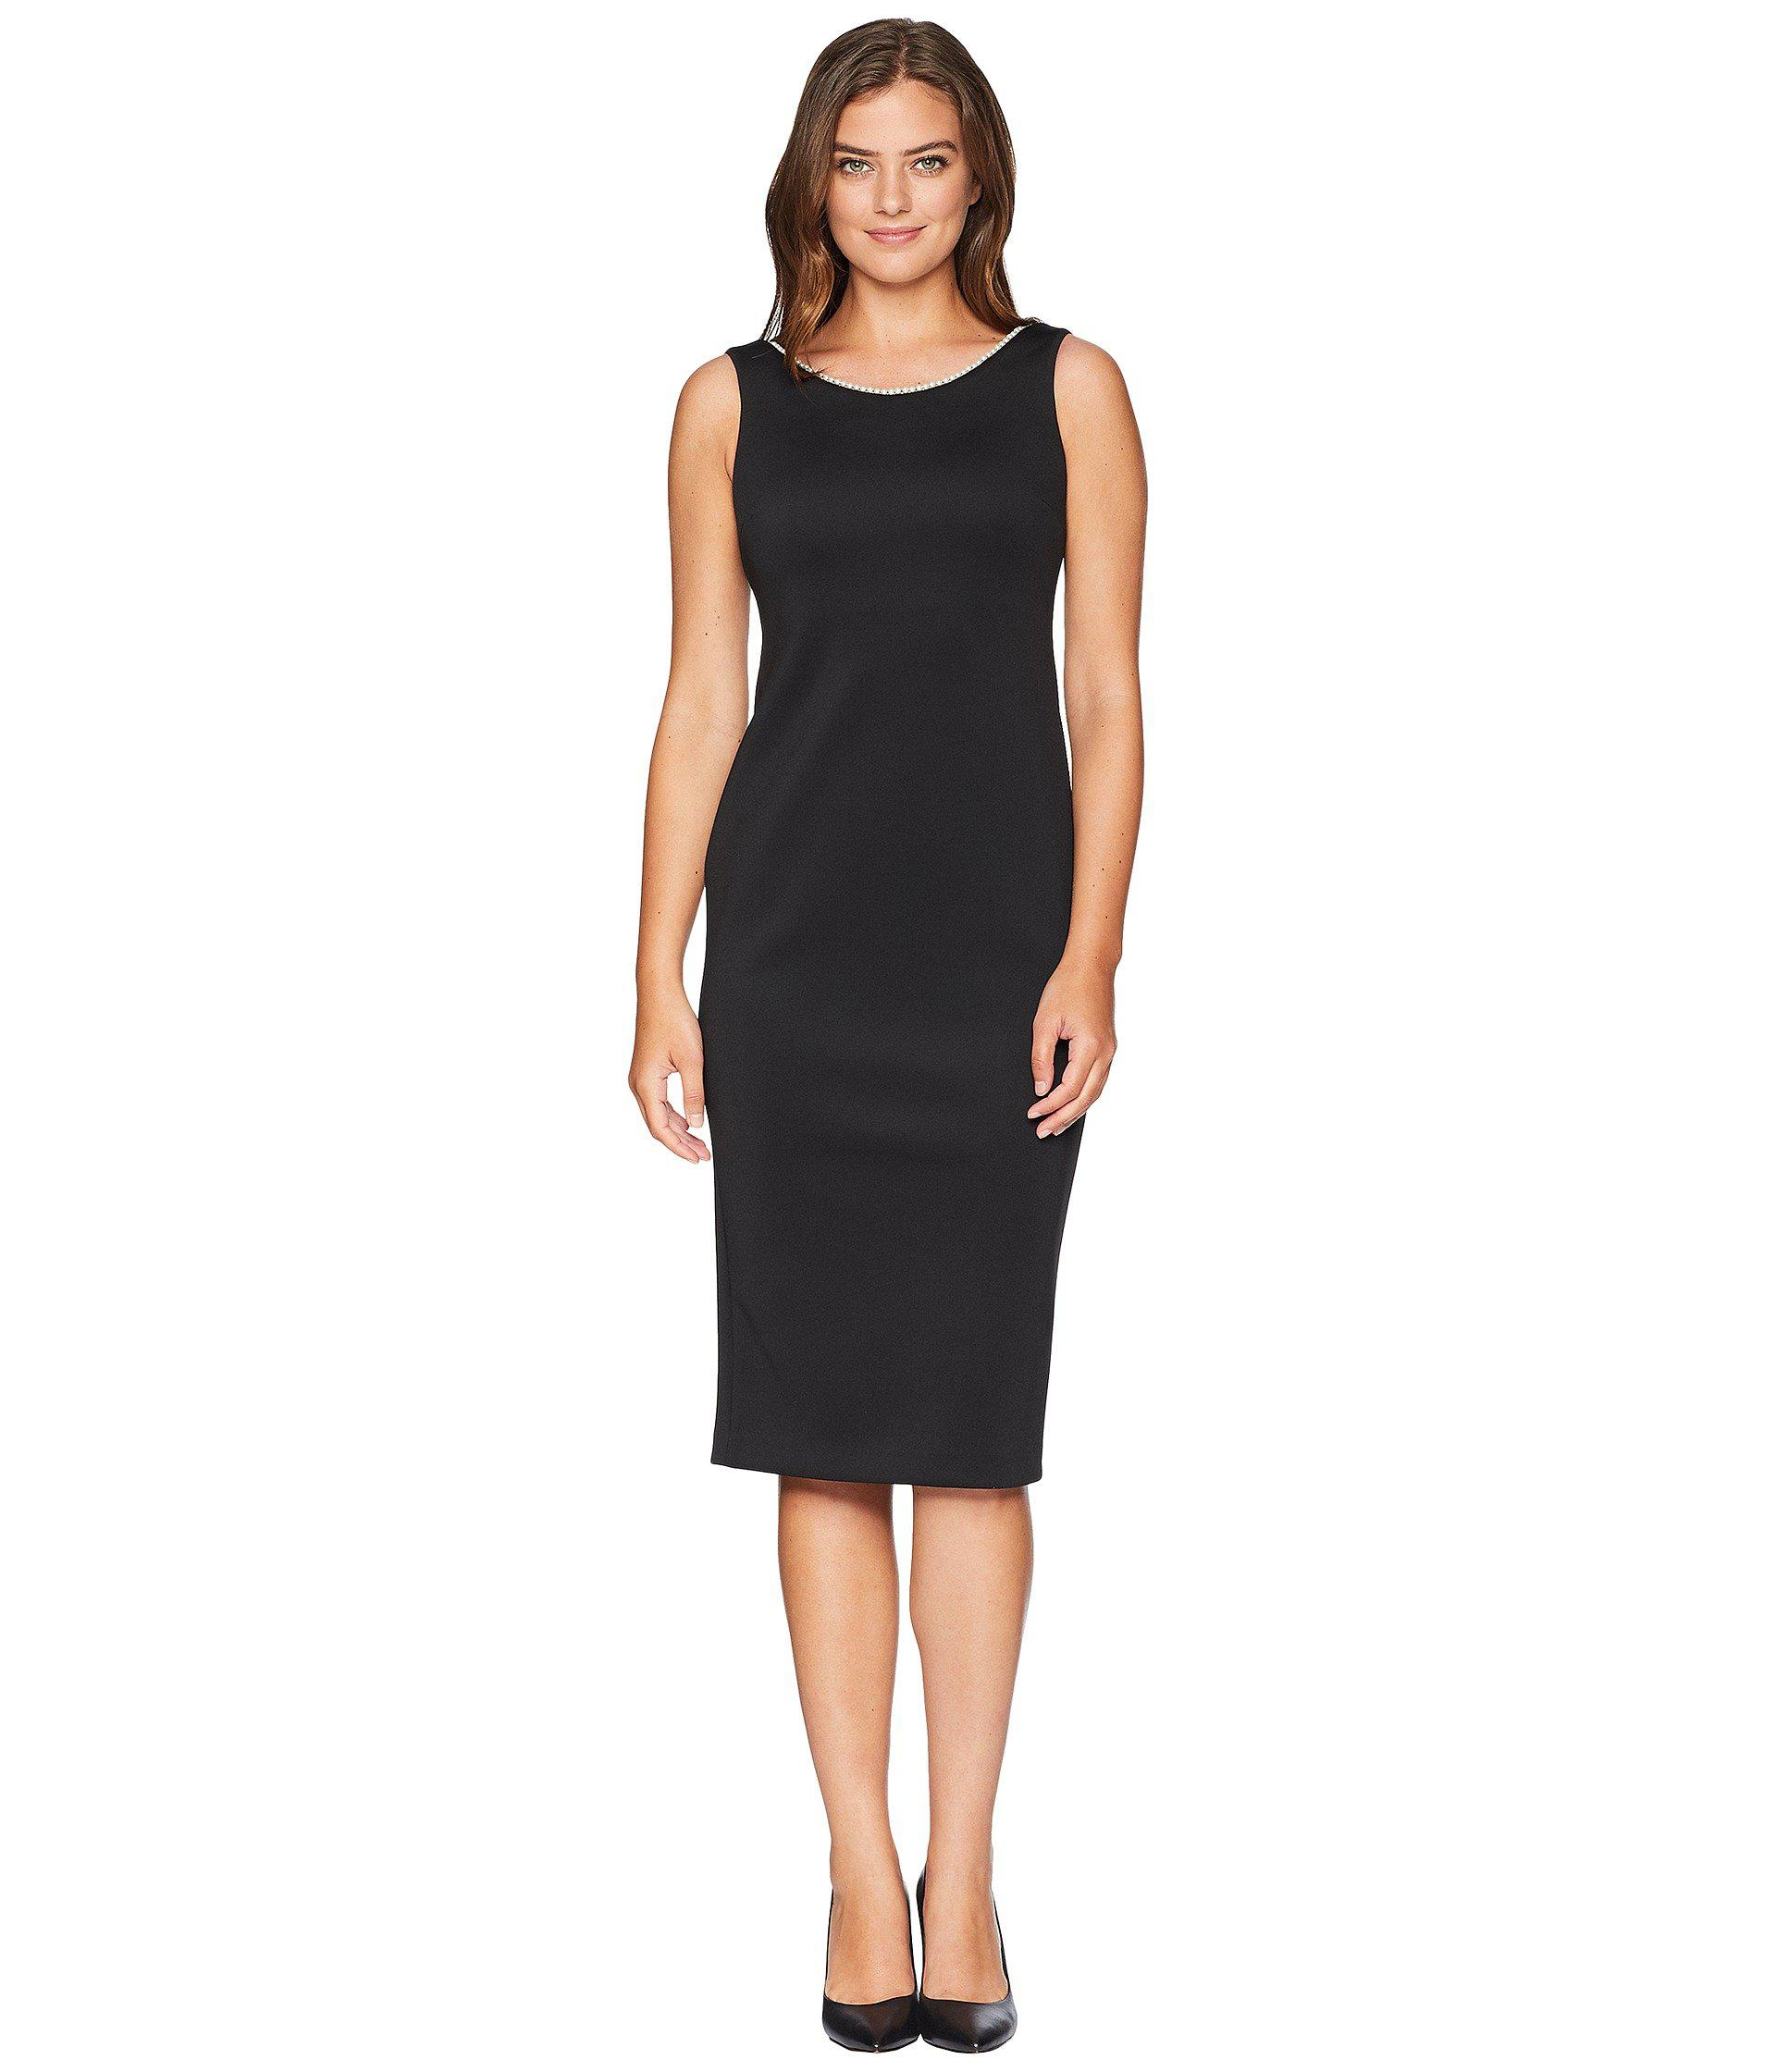 Calvin Klein Women S Black Sheath Dress With Pearl Detail Cd8m19nd